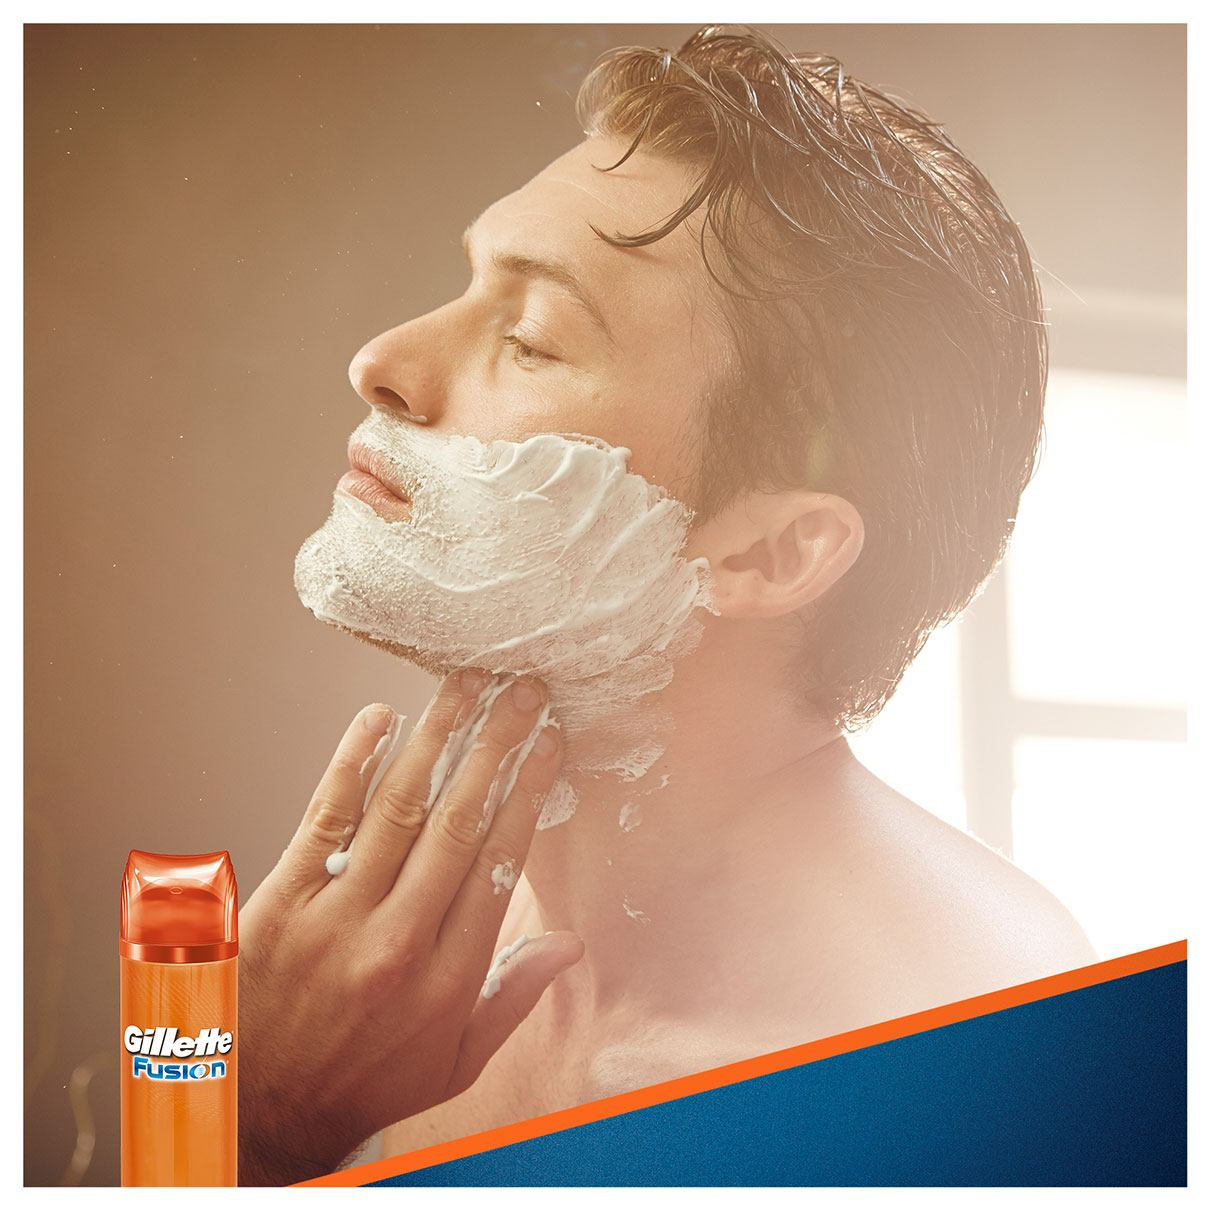 Shaving Gel Gillette Fusion Hydra Gel Ultra Protection